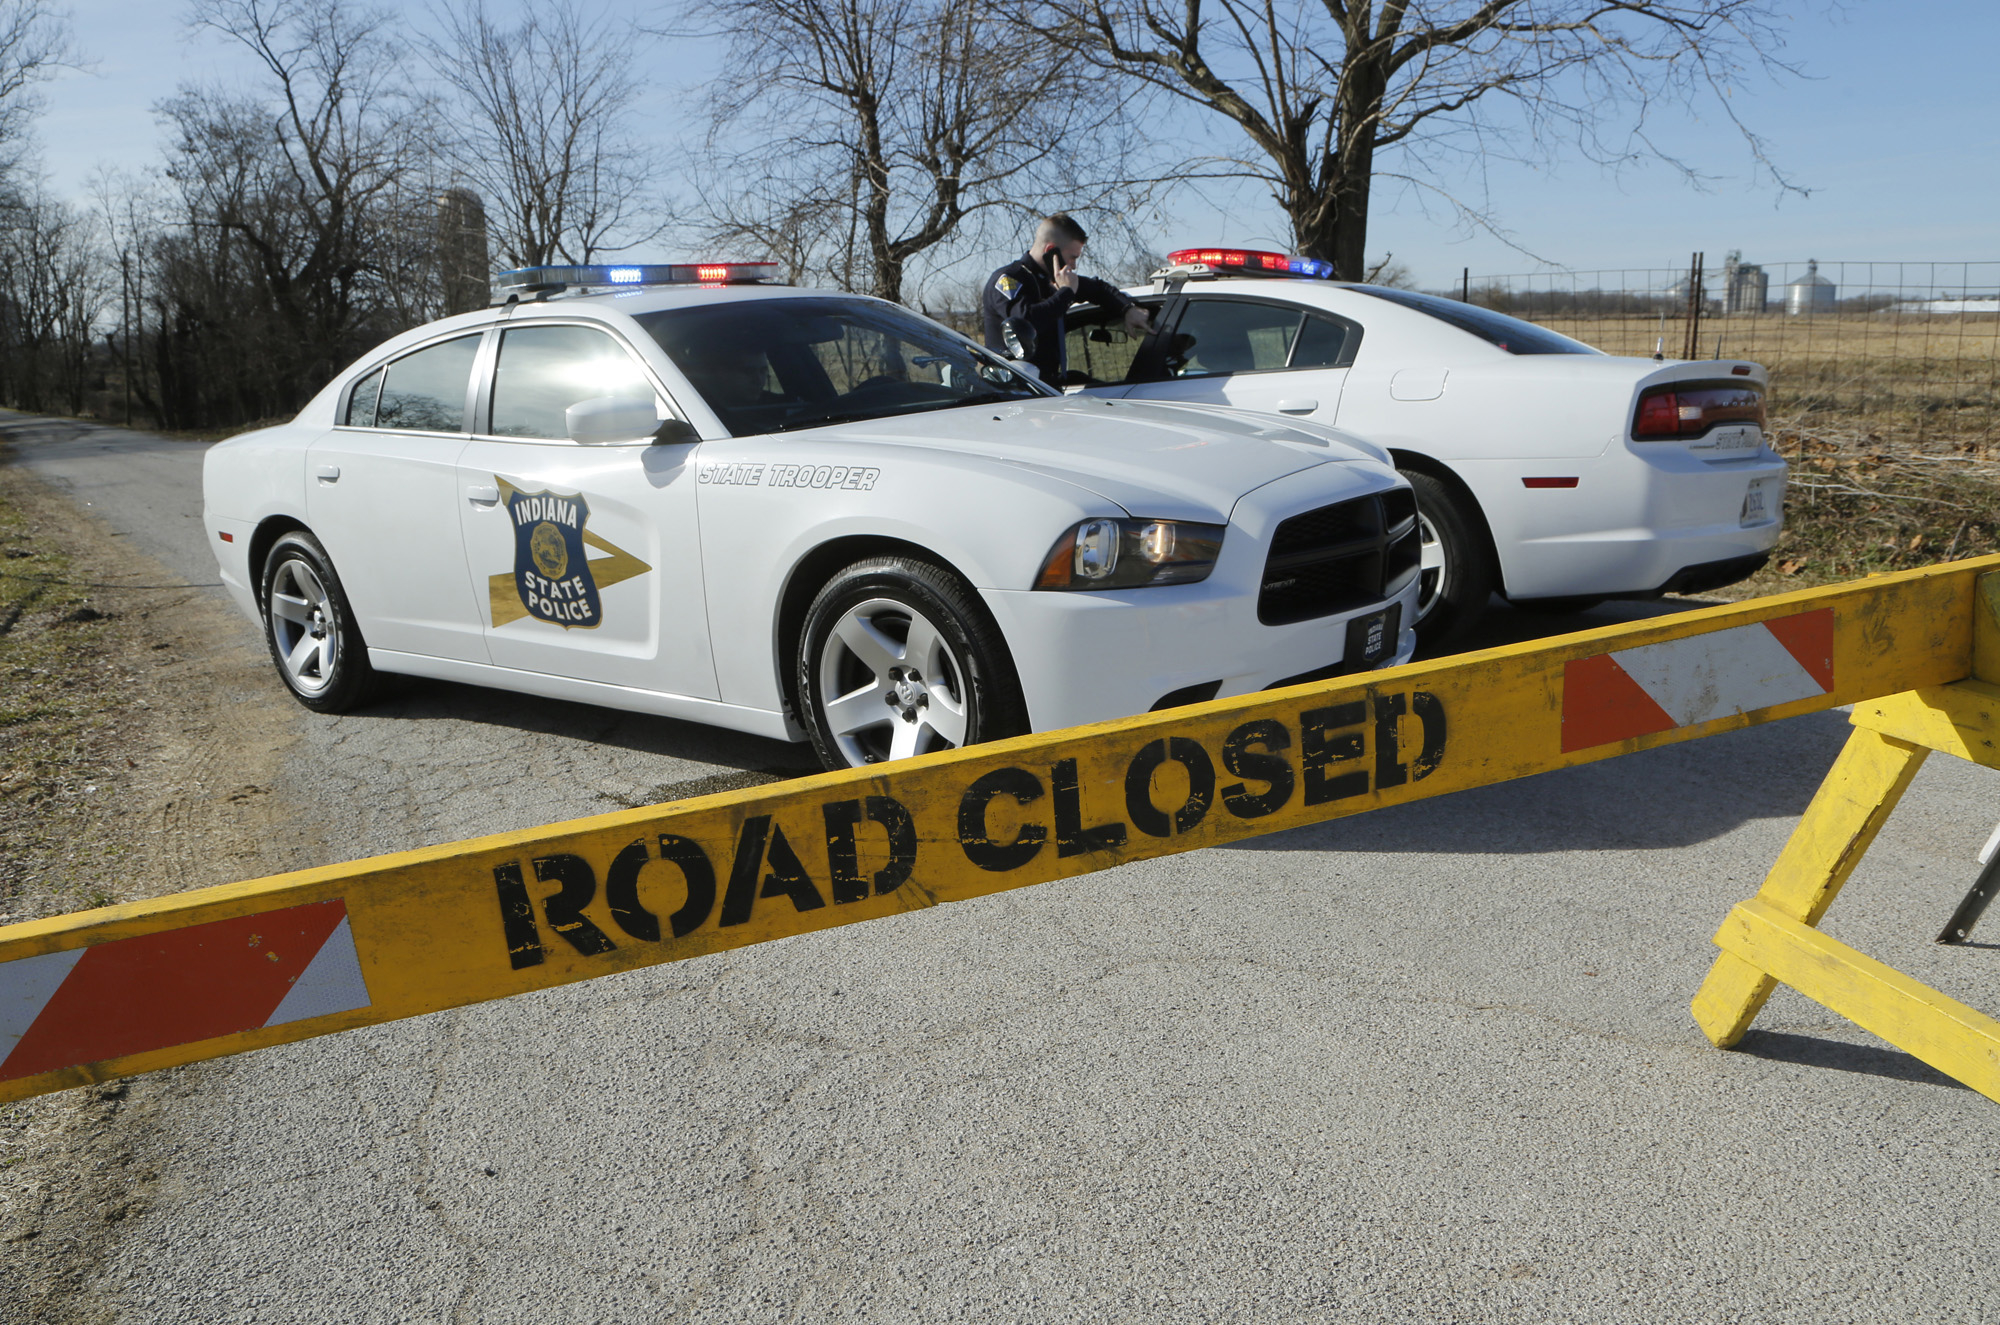 Police block the road near the intersection of Carroll County Roads North 575W and West 300N on Feb. 14, 2017, east of Delphi, Ind.